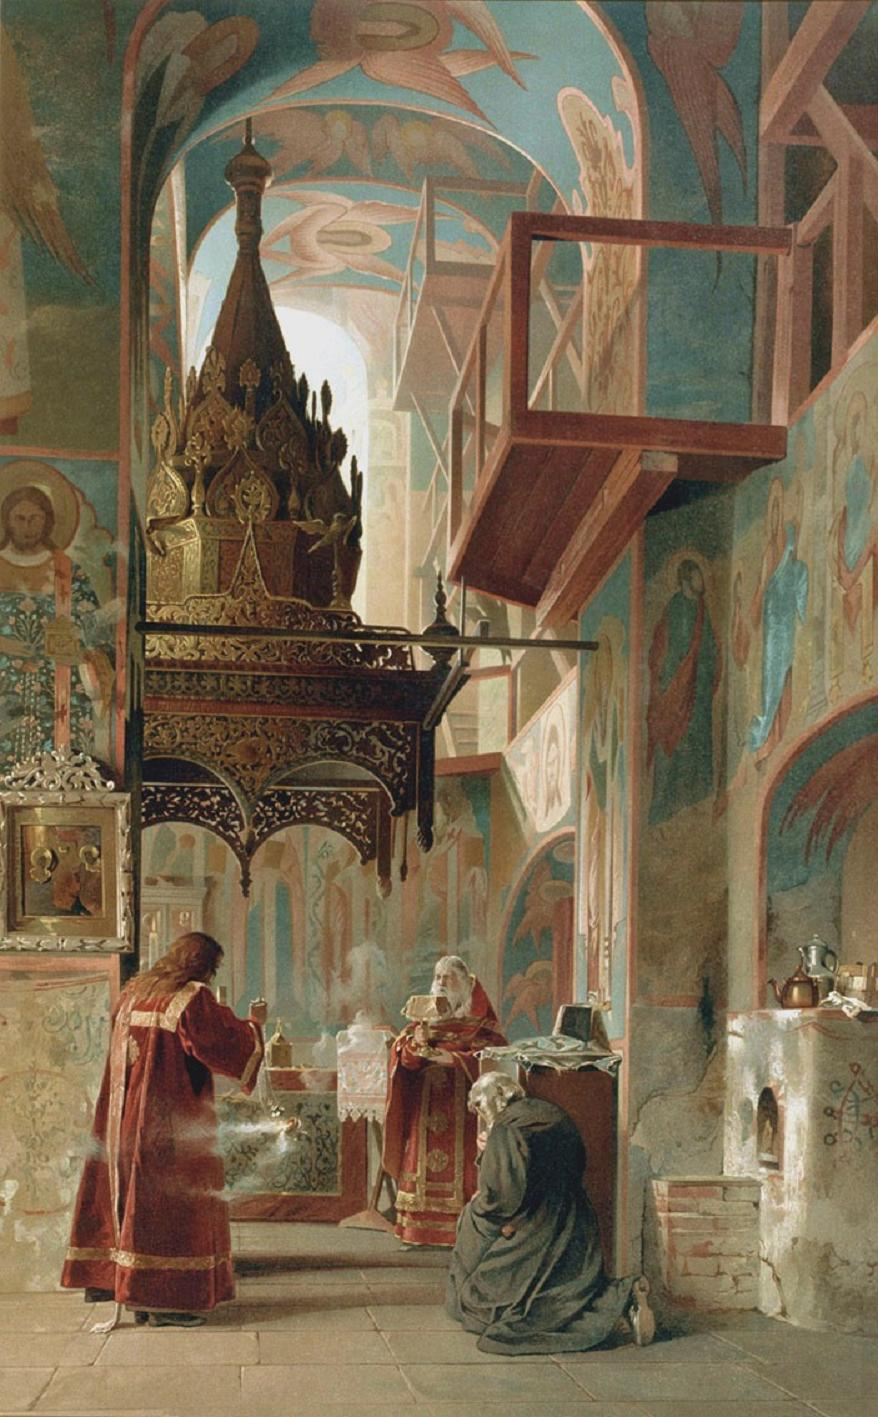 Inside the Sanctuary of a Church (Mikhail Villie, no date (1880s-1890s) dans immagini sacre